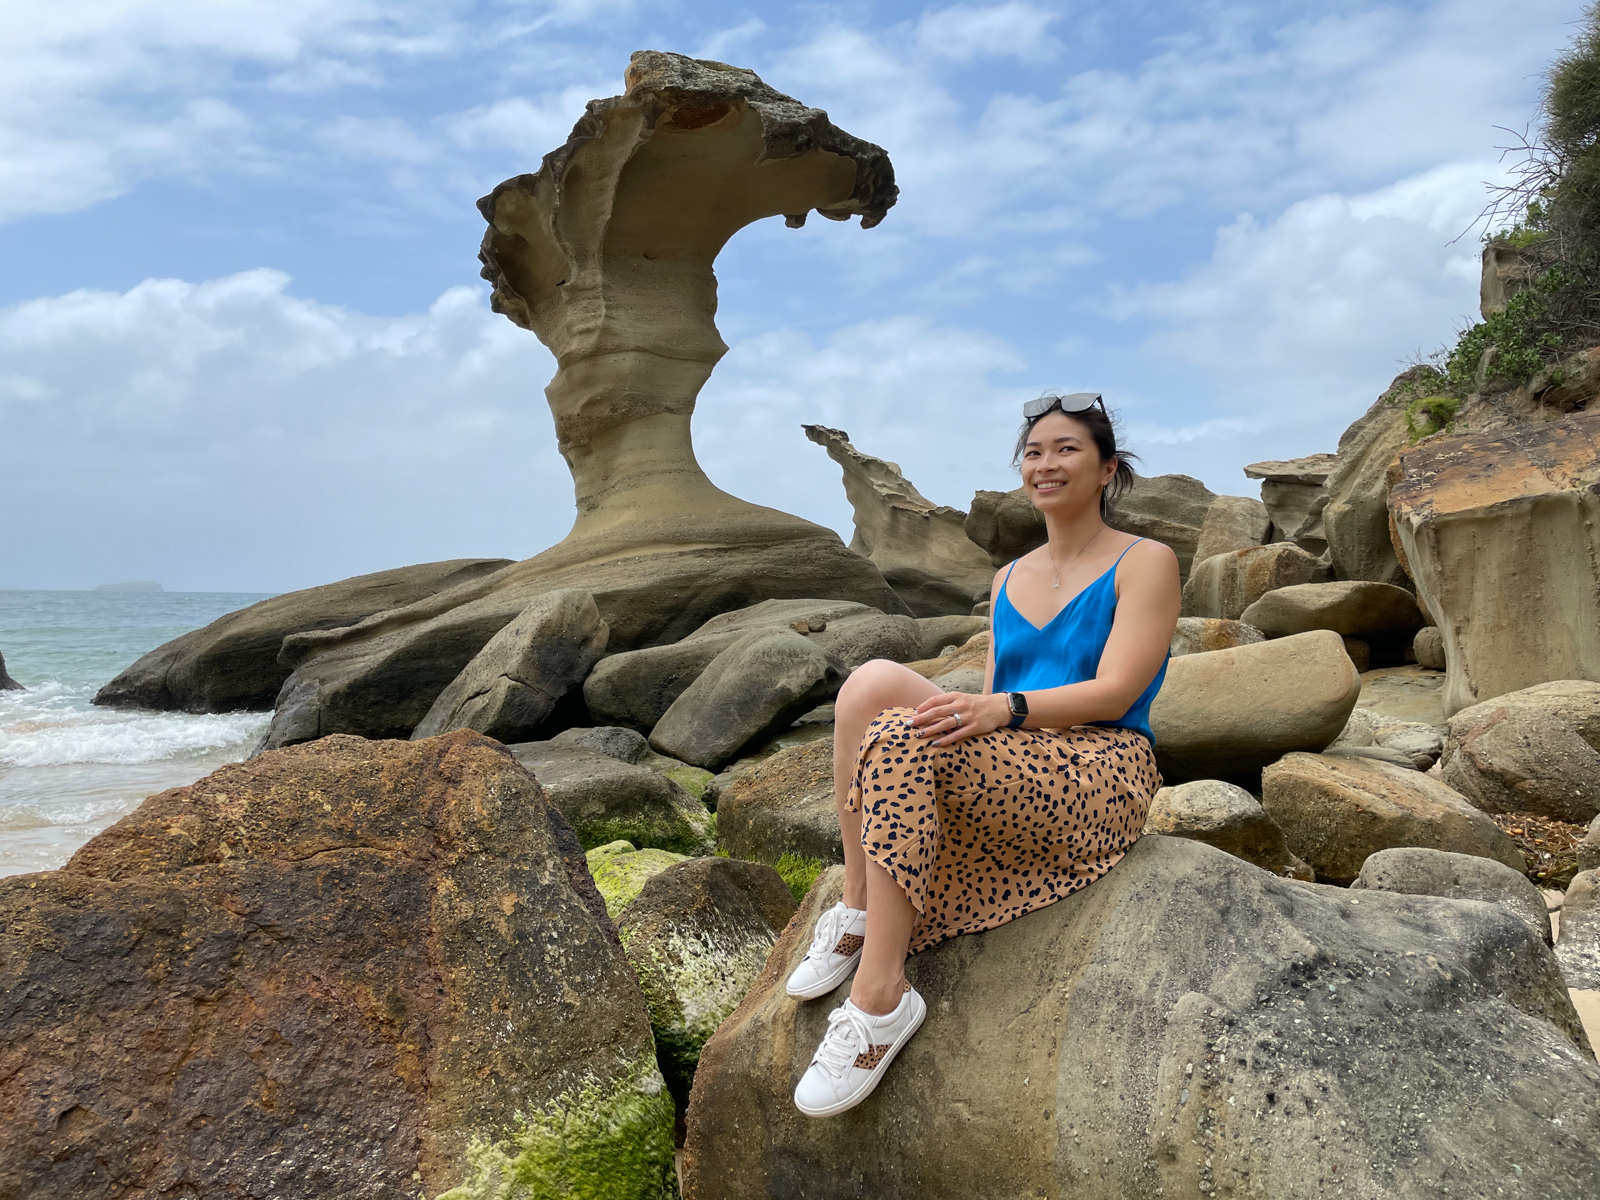 A woman sitting on a giant rock on a beach, with a wave-shaped rock formation behind her. She is wearing sunglasses on top of her head and is dressed in a blue singlet top, animal print skirt, and white sneakers.